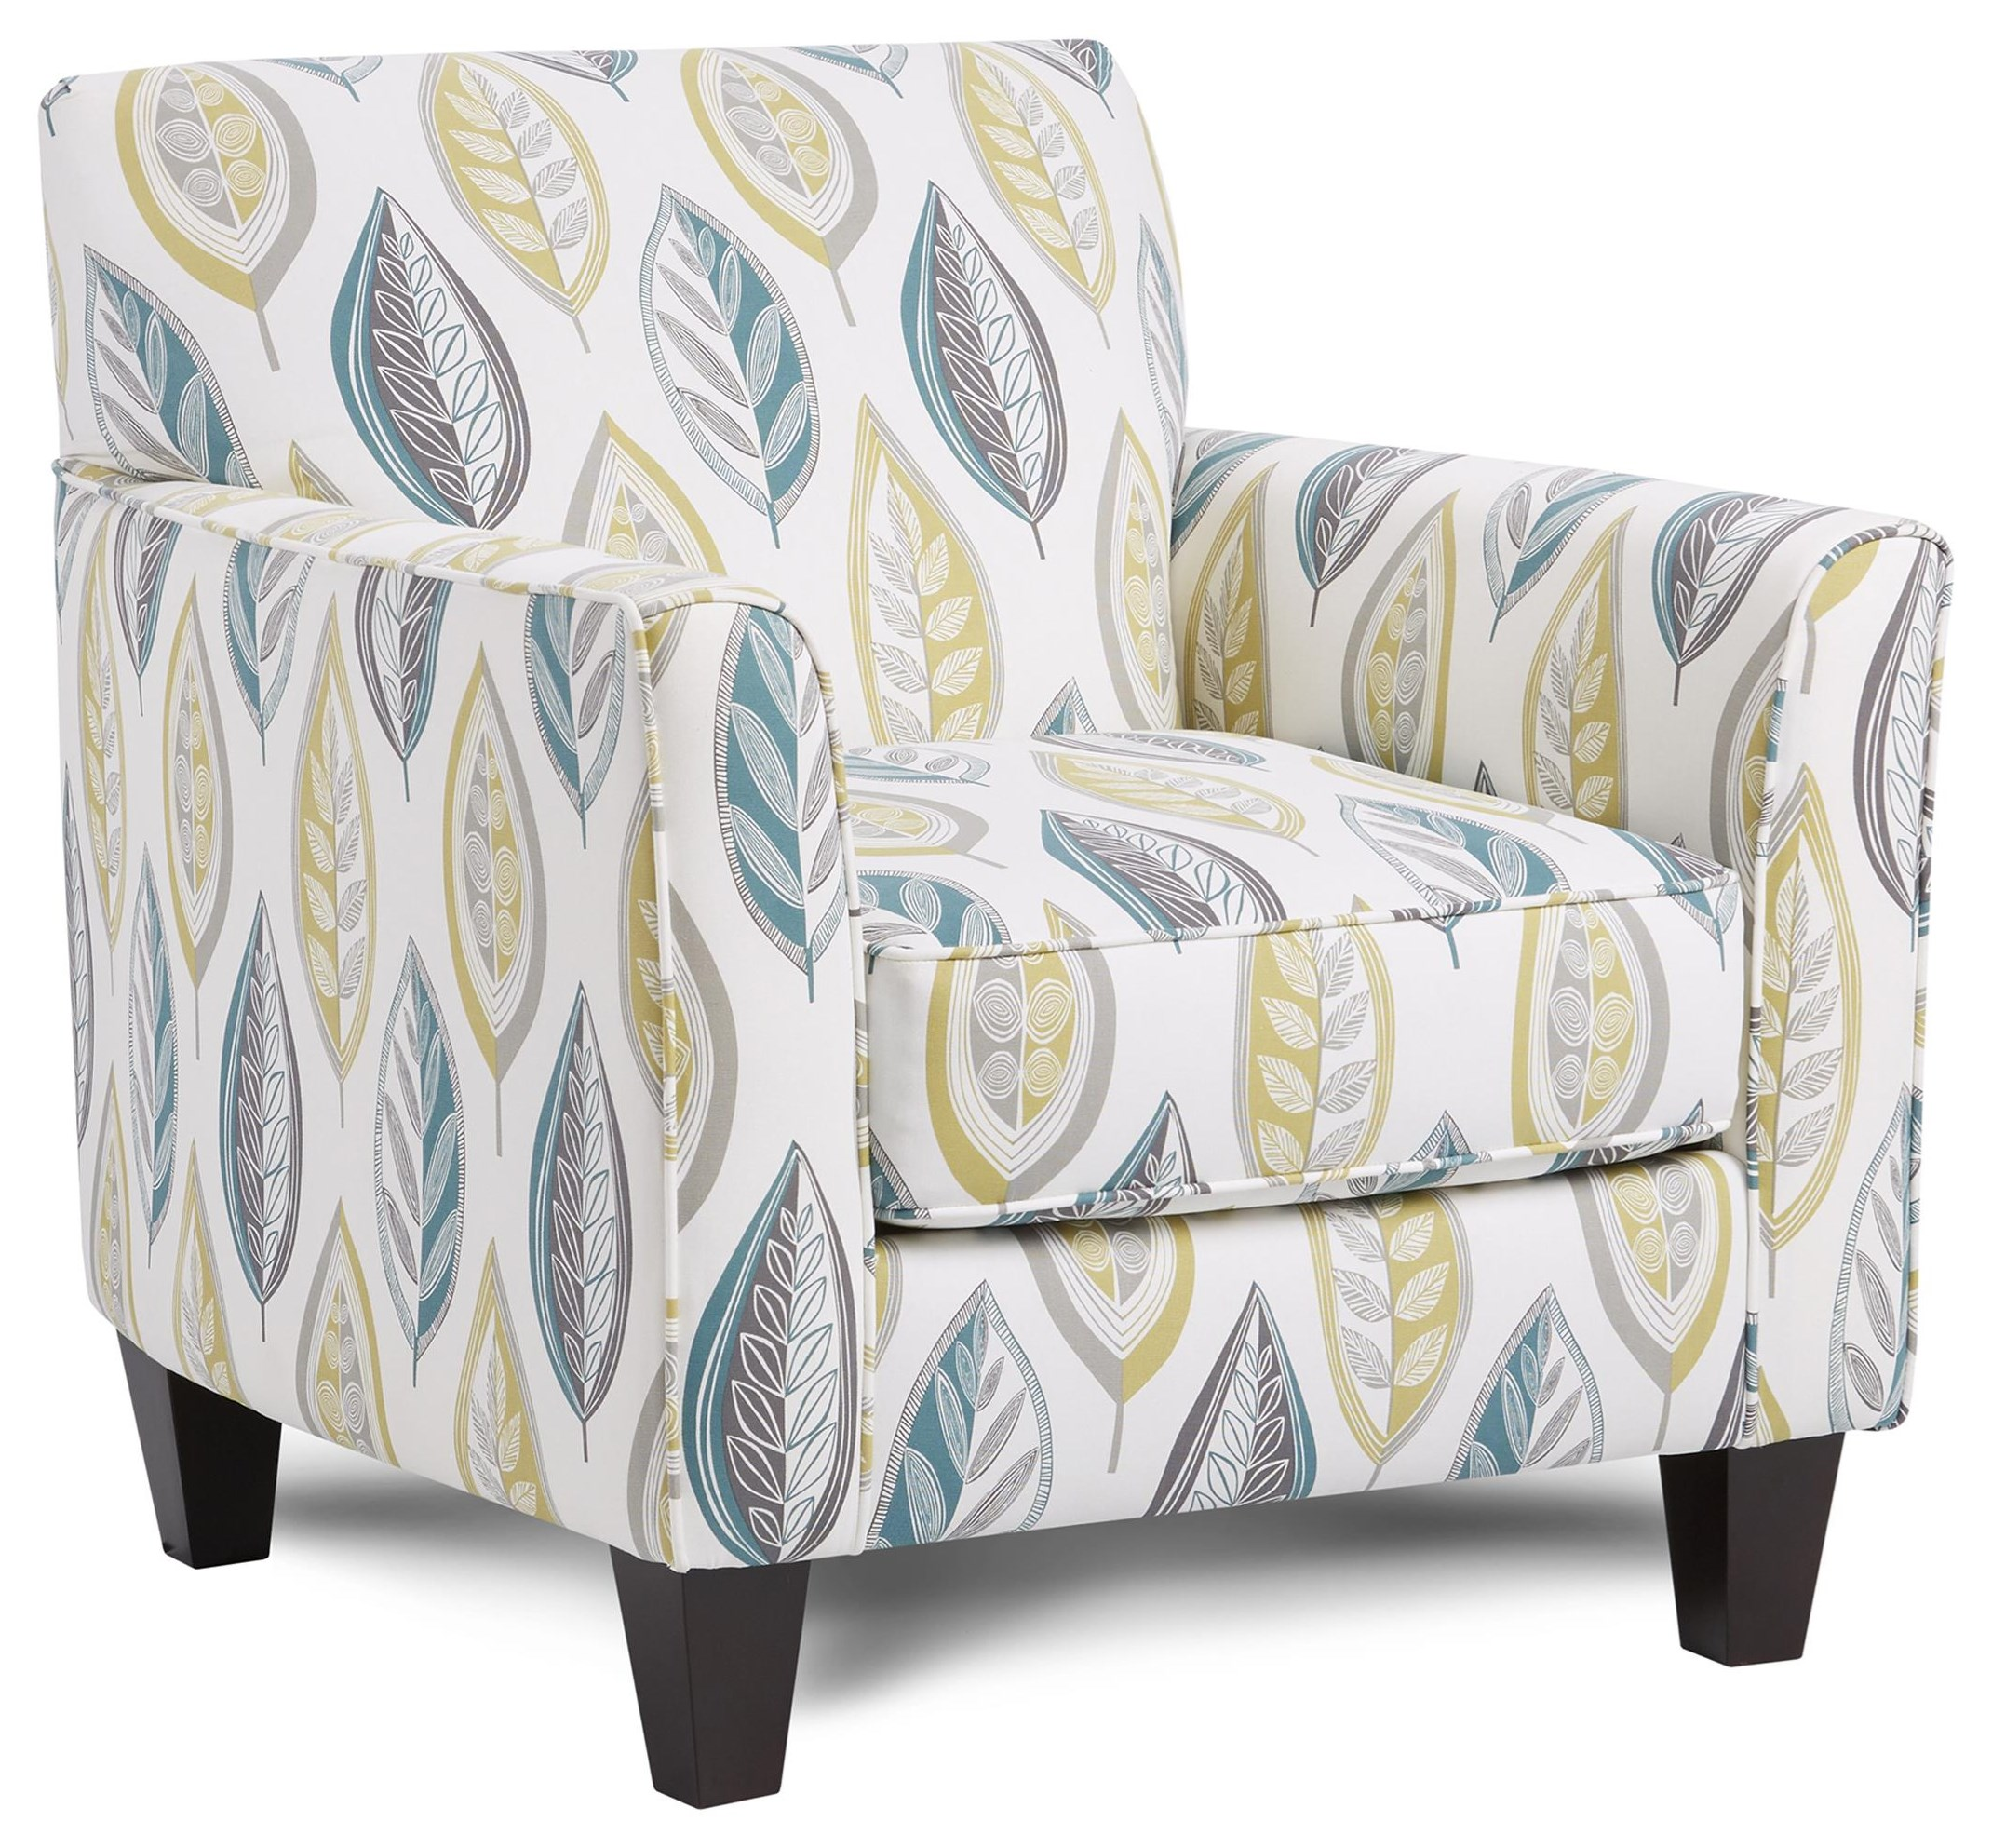 25-02 Chair by Kent Home Furnishings at Johnny Janosik